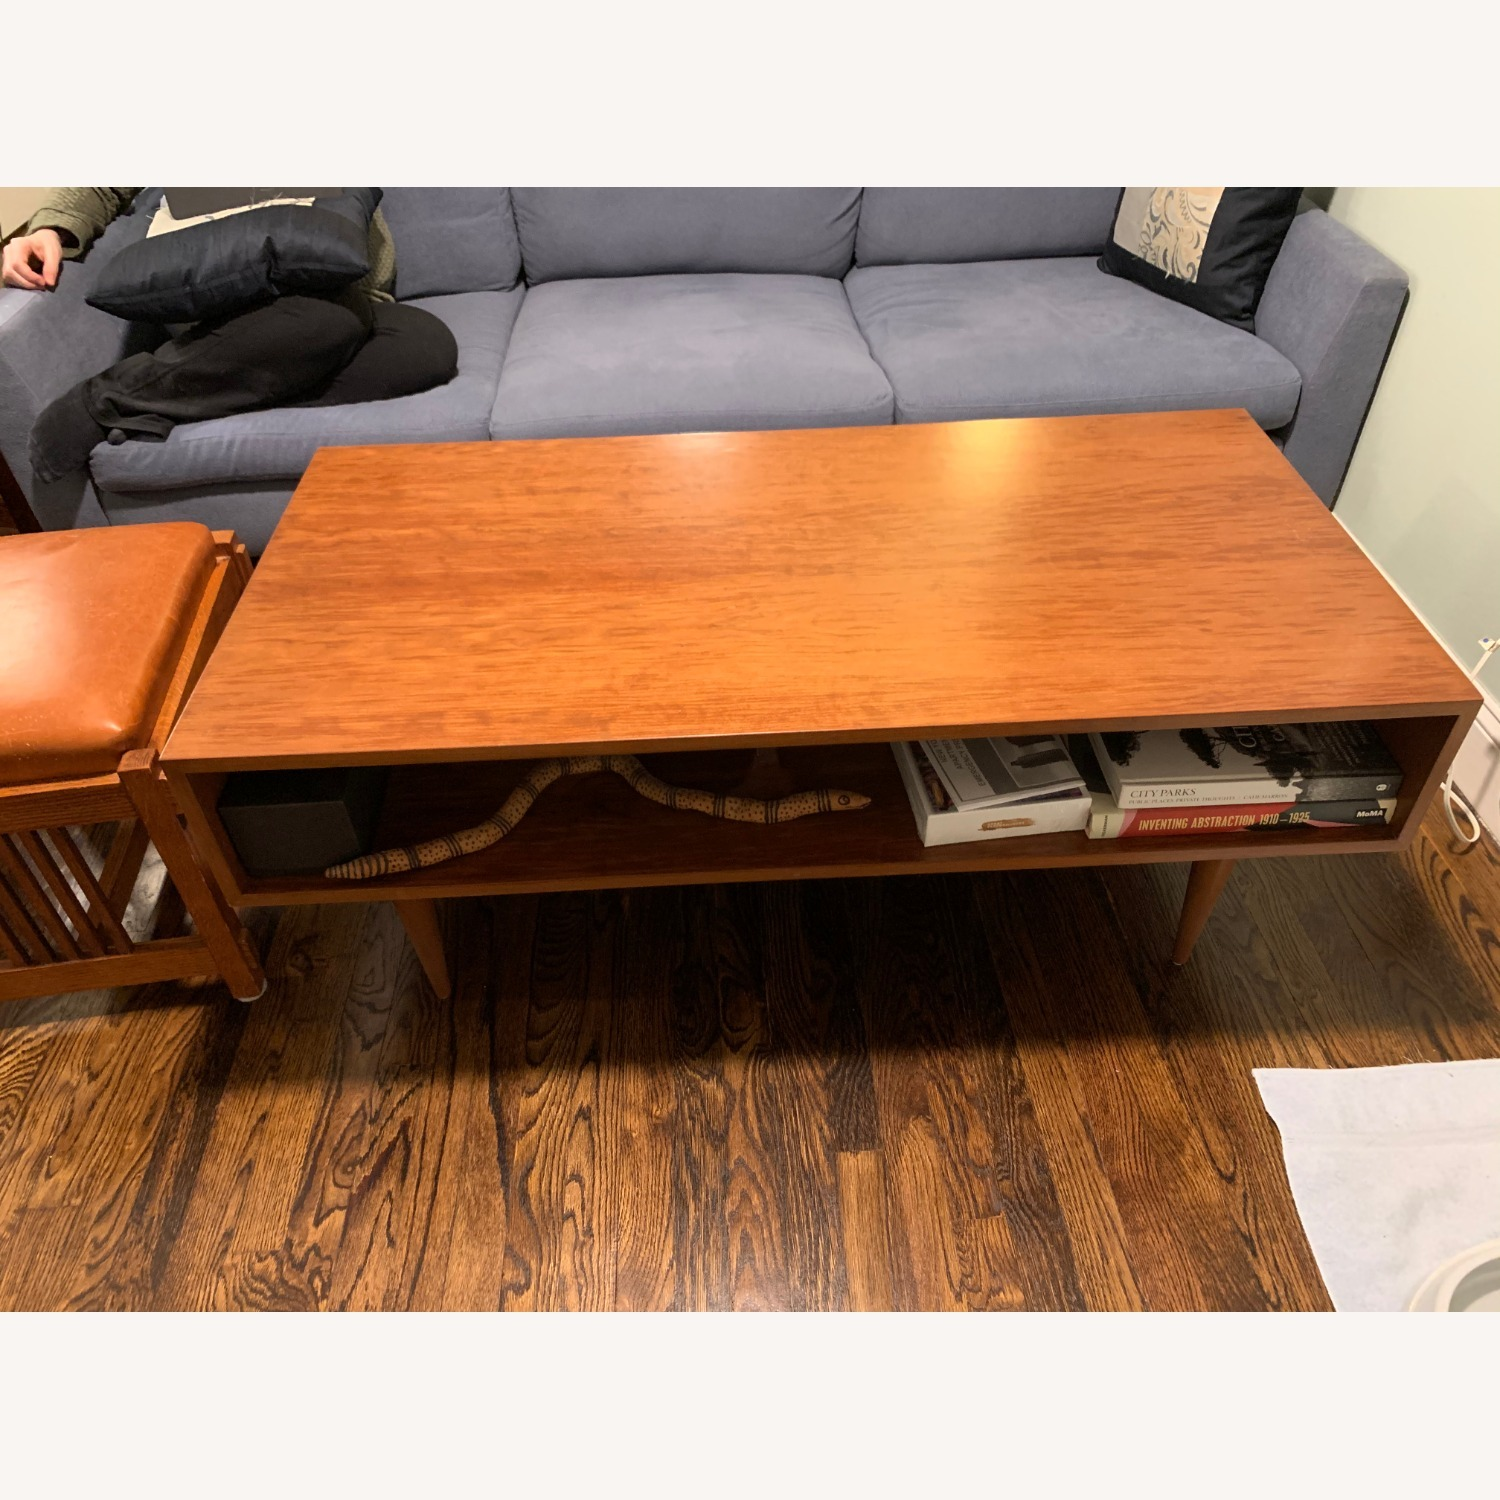 Urbangreen Furniture Coffee Table Cherry Wood Toffee Color - image-1